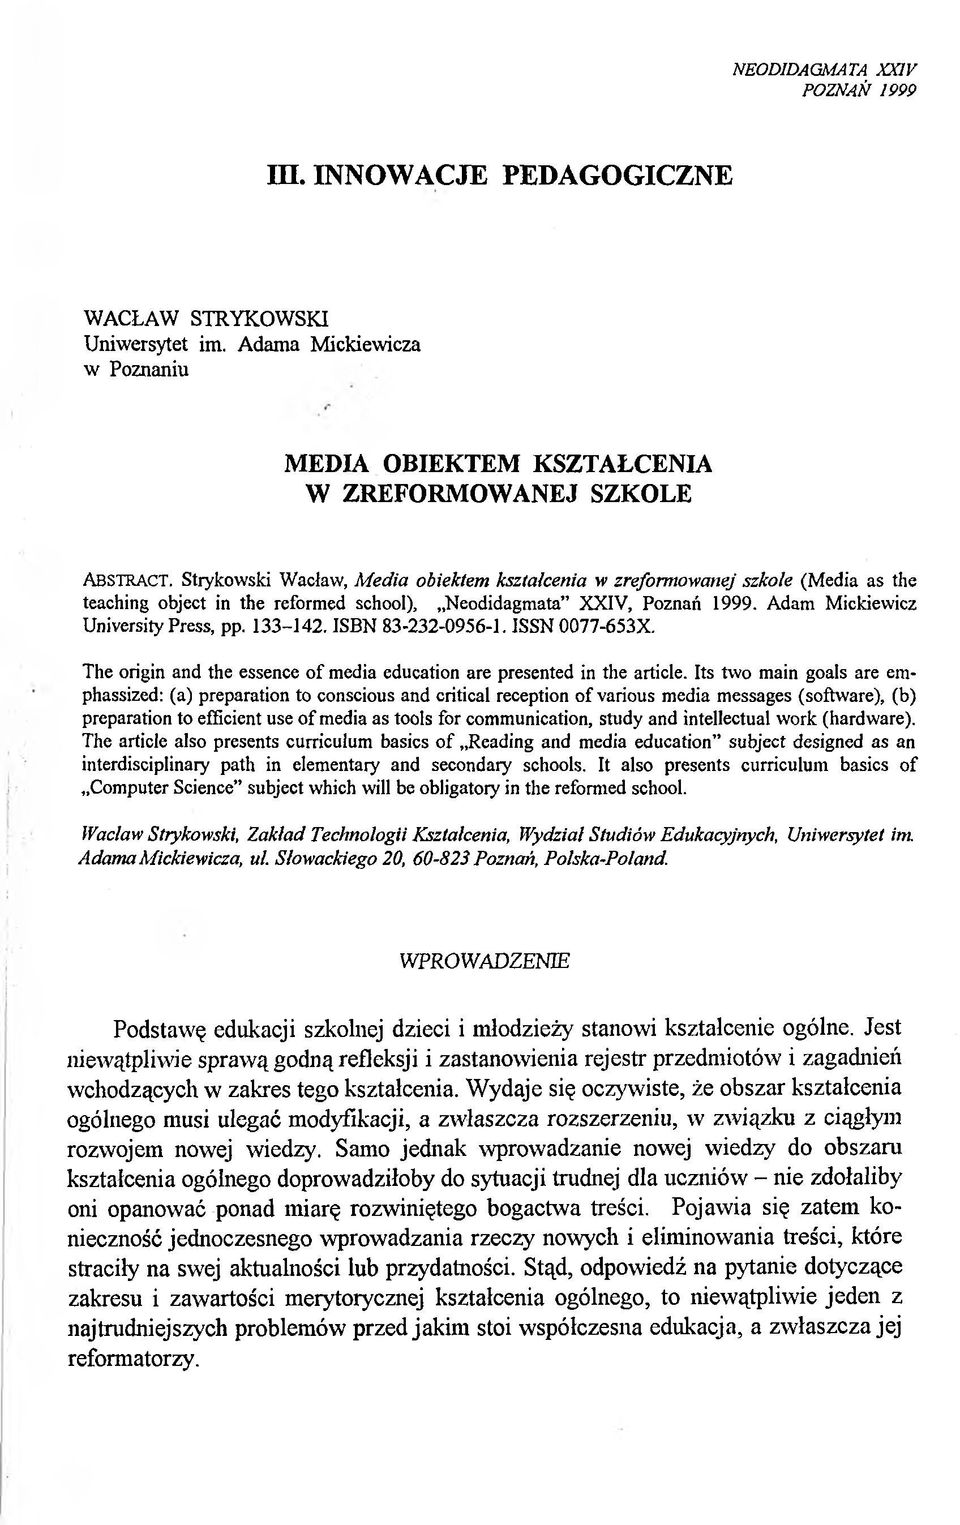 133-142. ISBN 83-232-0956-1. ISSN 0077-653X. The origin and the essence of media education are presented in the article.